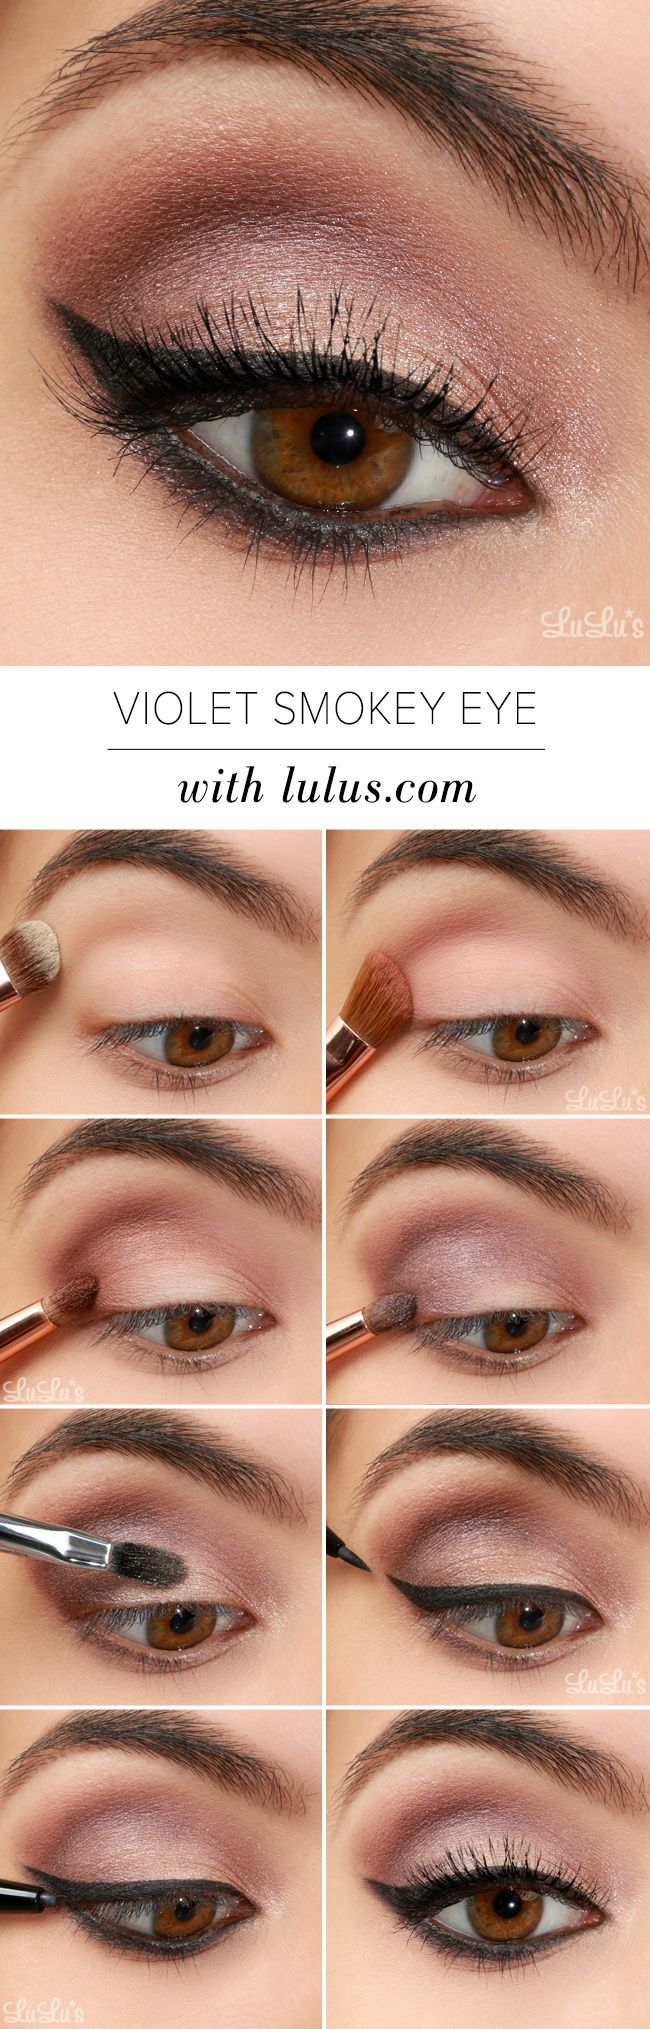 LuLu*s How-To: Violet Smokey Eye Makeup Tutorial